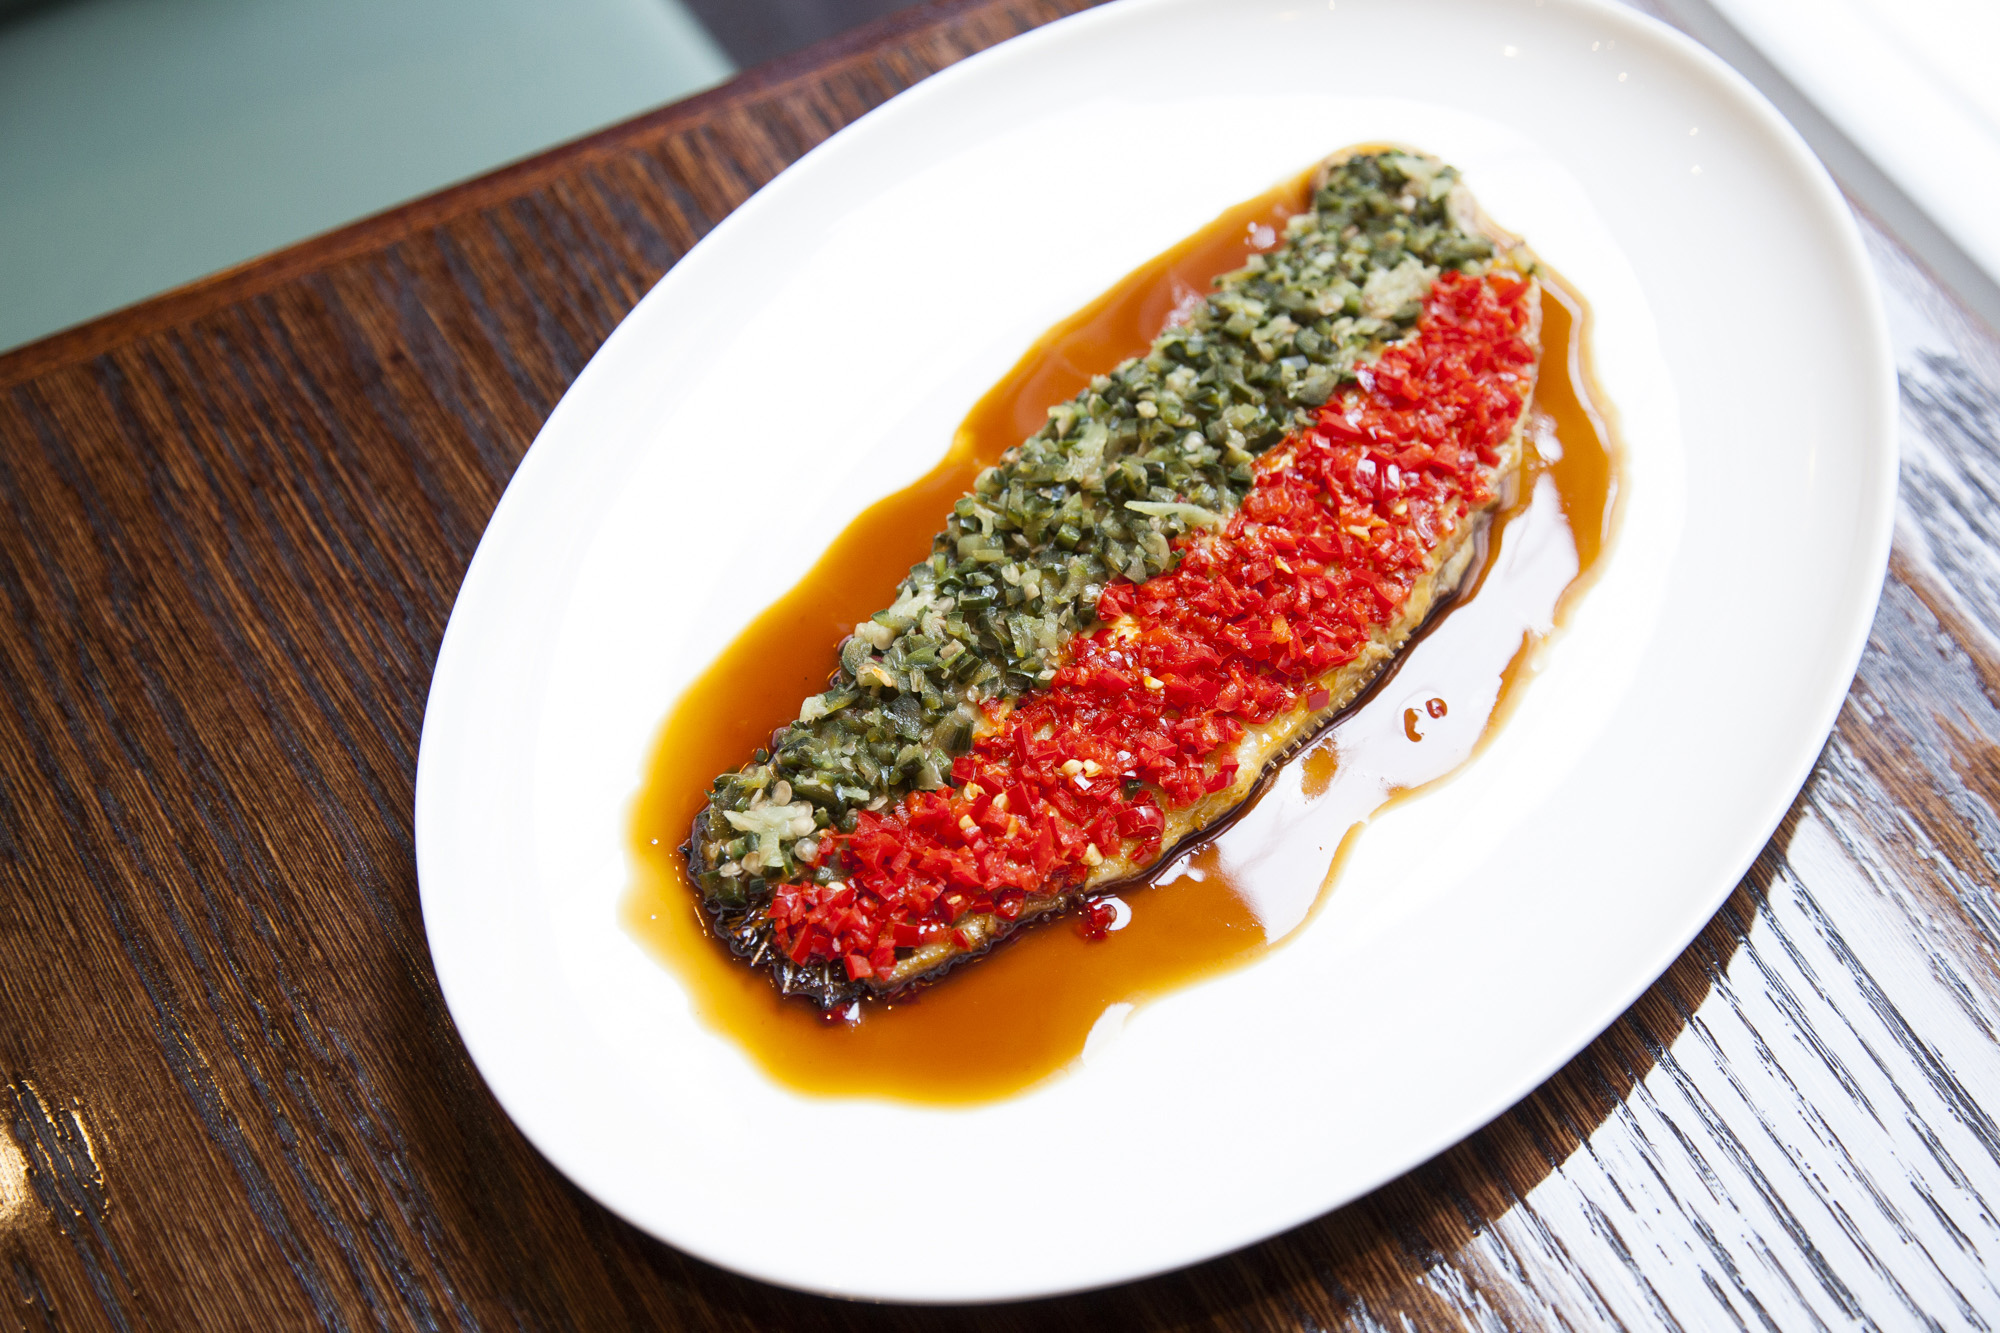 Sea bass recipe with fermented chilli